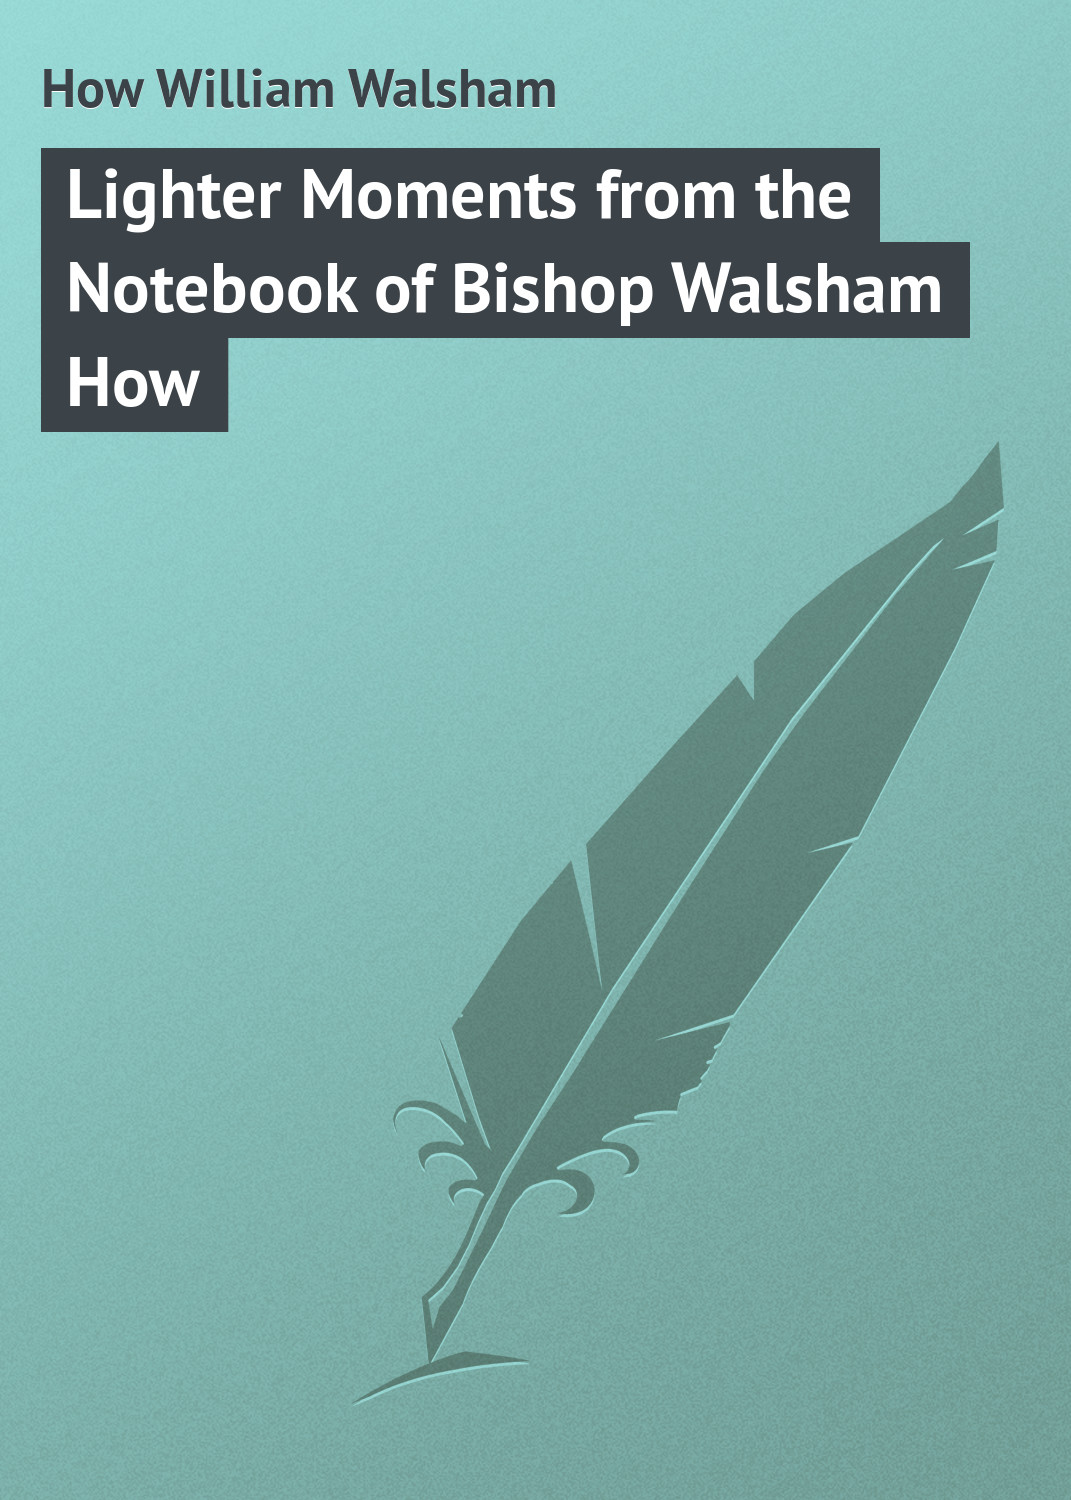 How William Walsham Lighter Moments from the Notebook of Bishop Walsham How bishop sleeve glitter dress